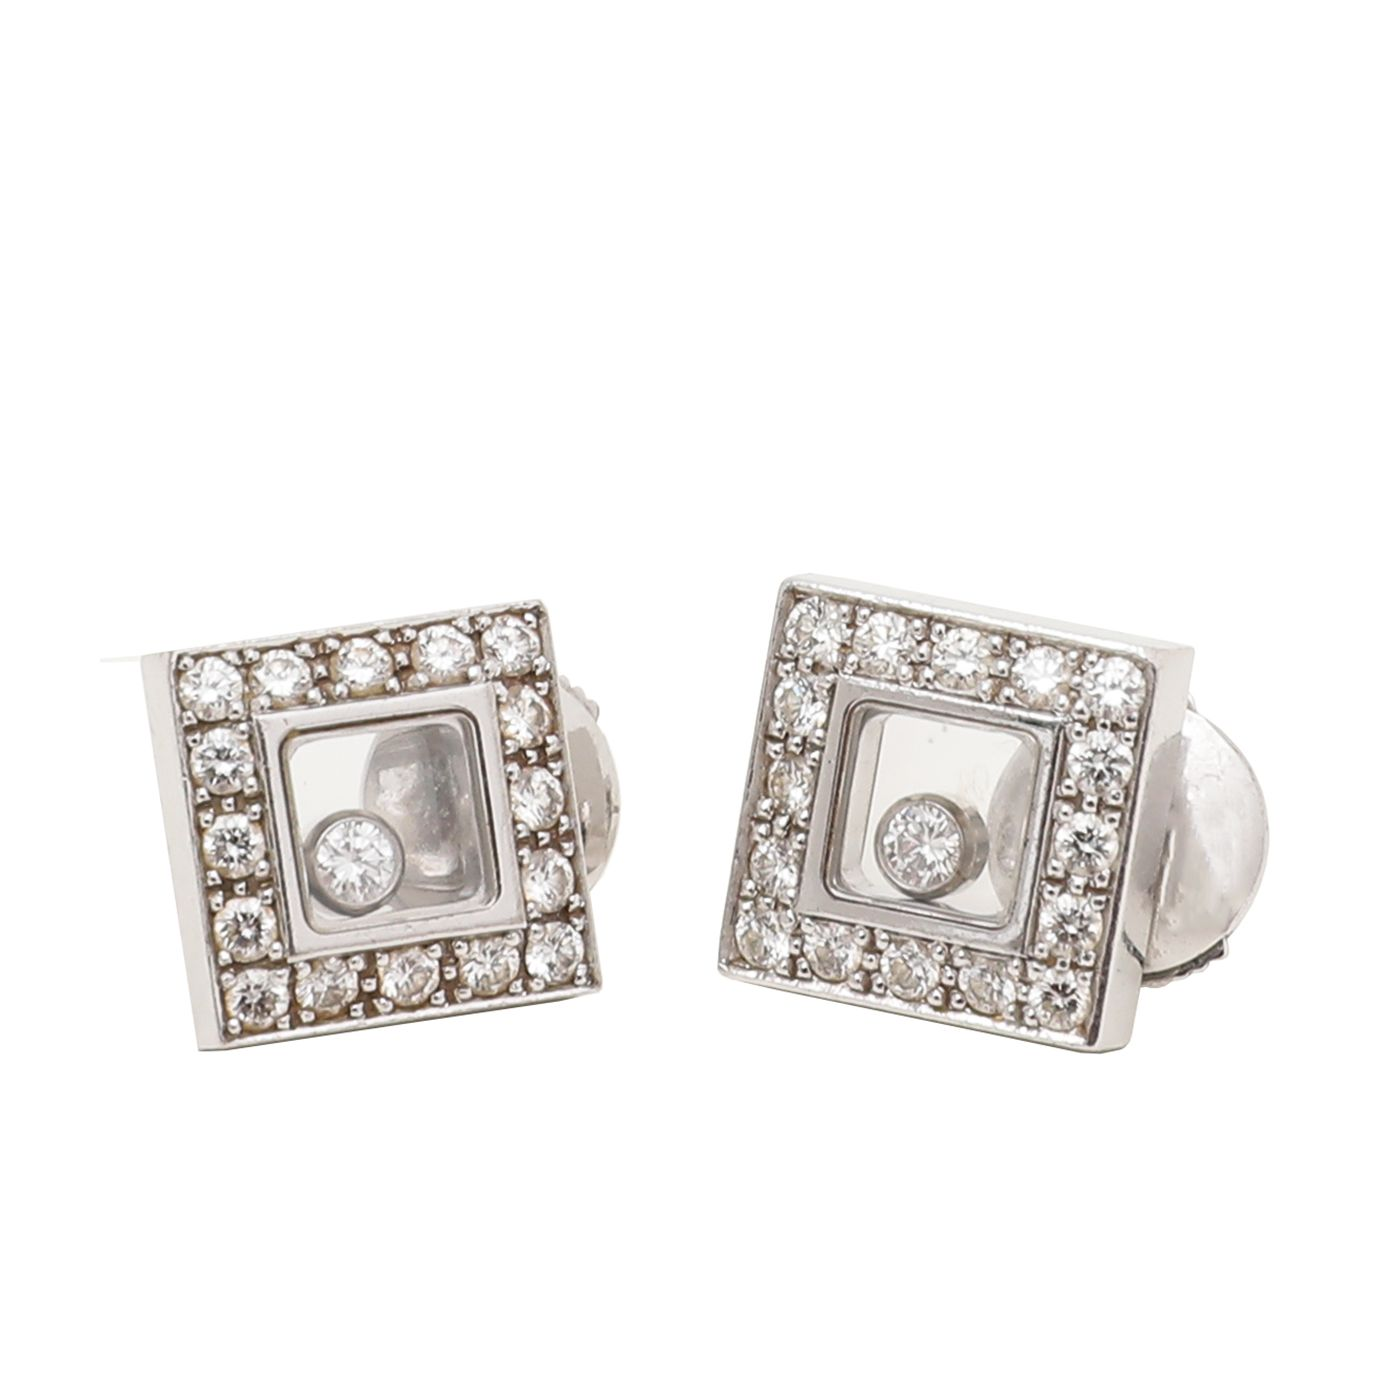 Chopard 18K White Gold Happy Diamond Square Earrings